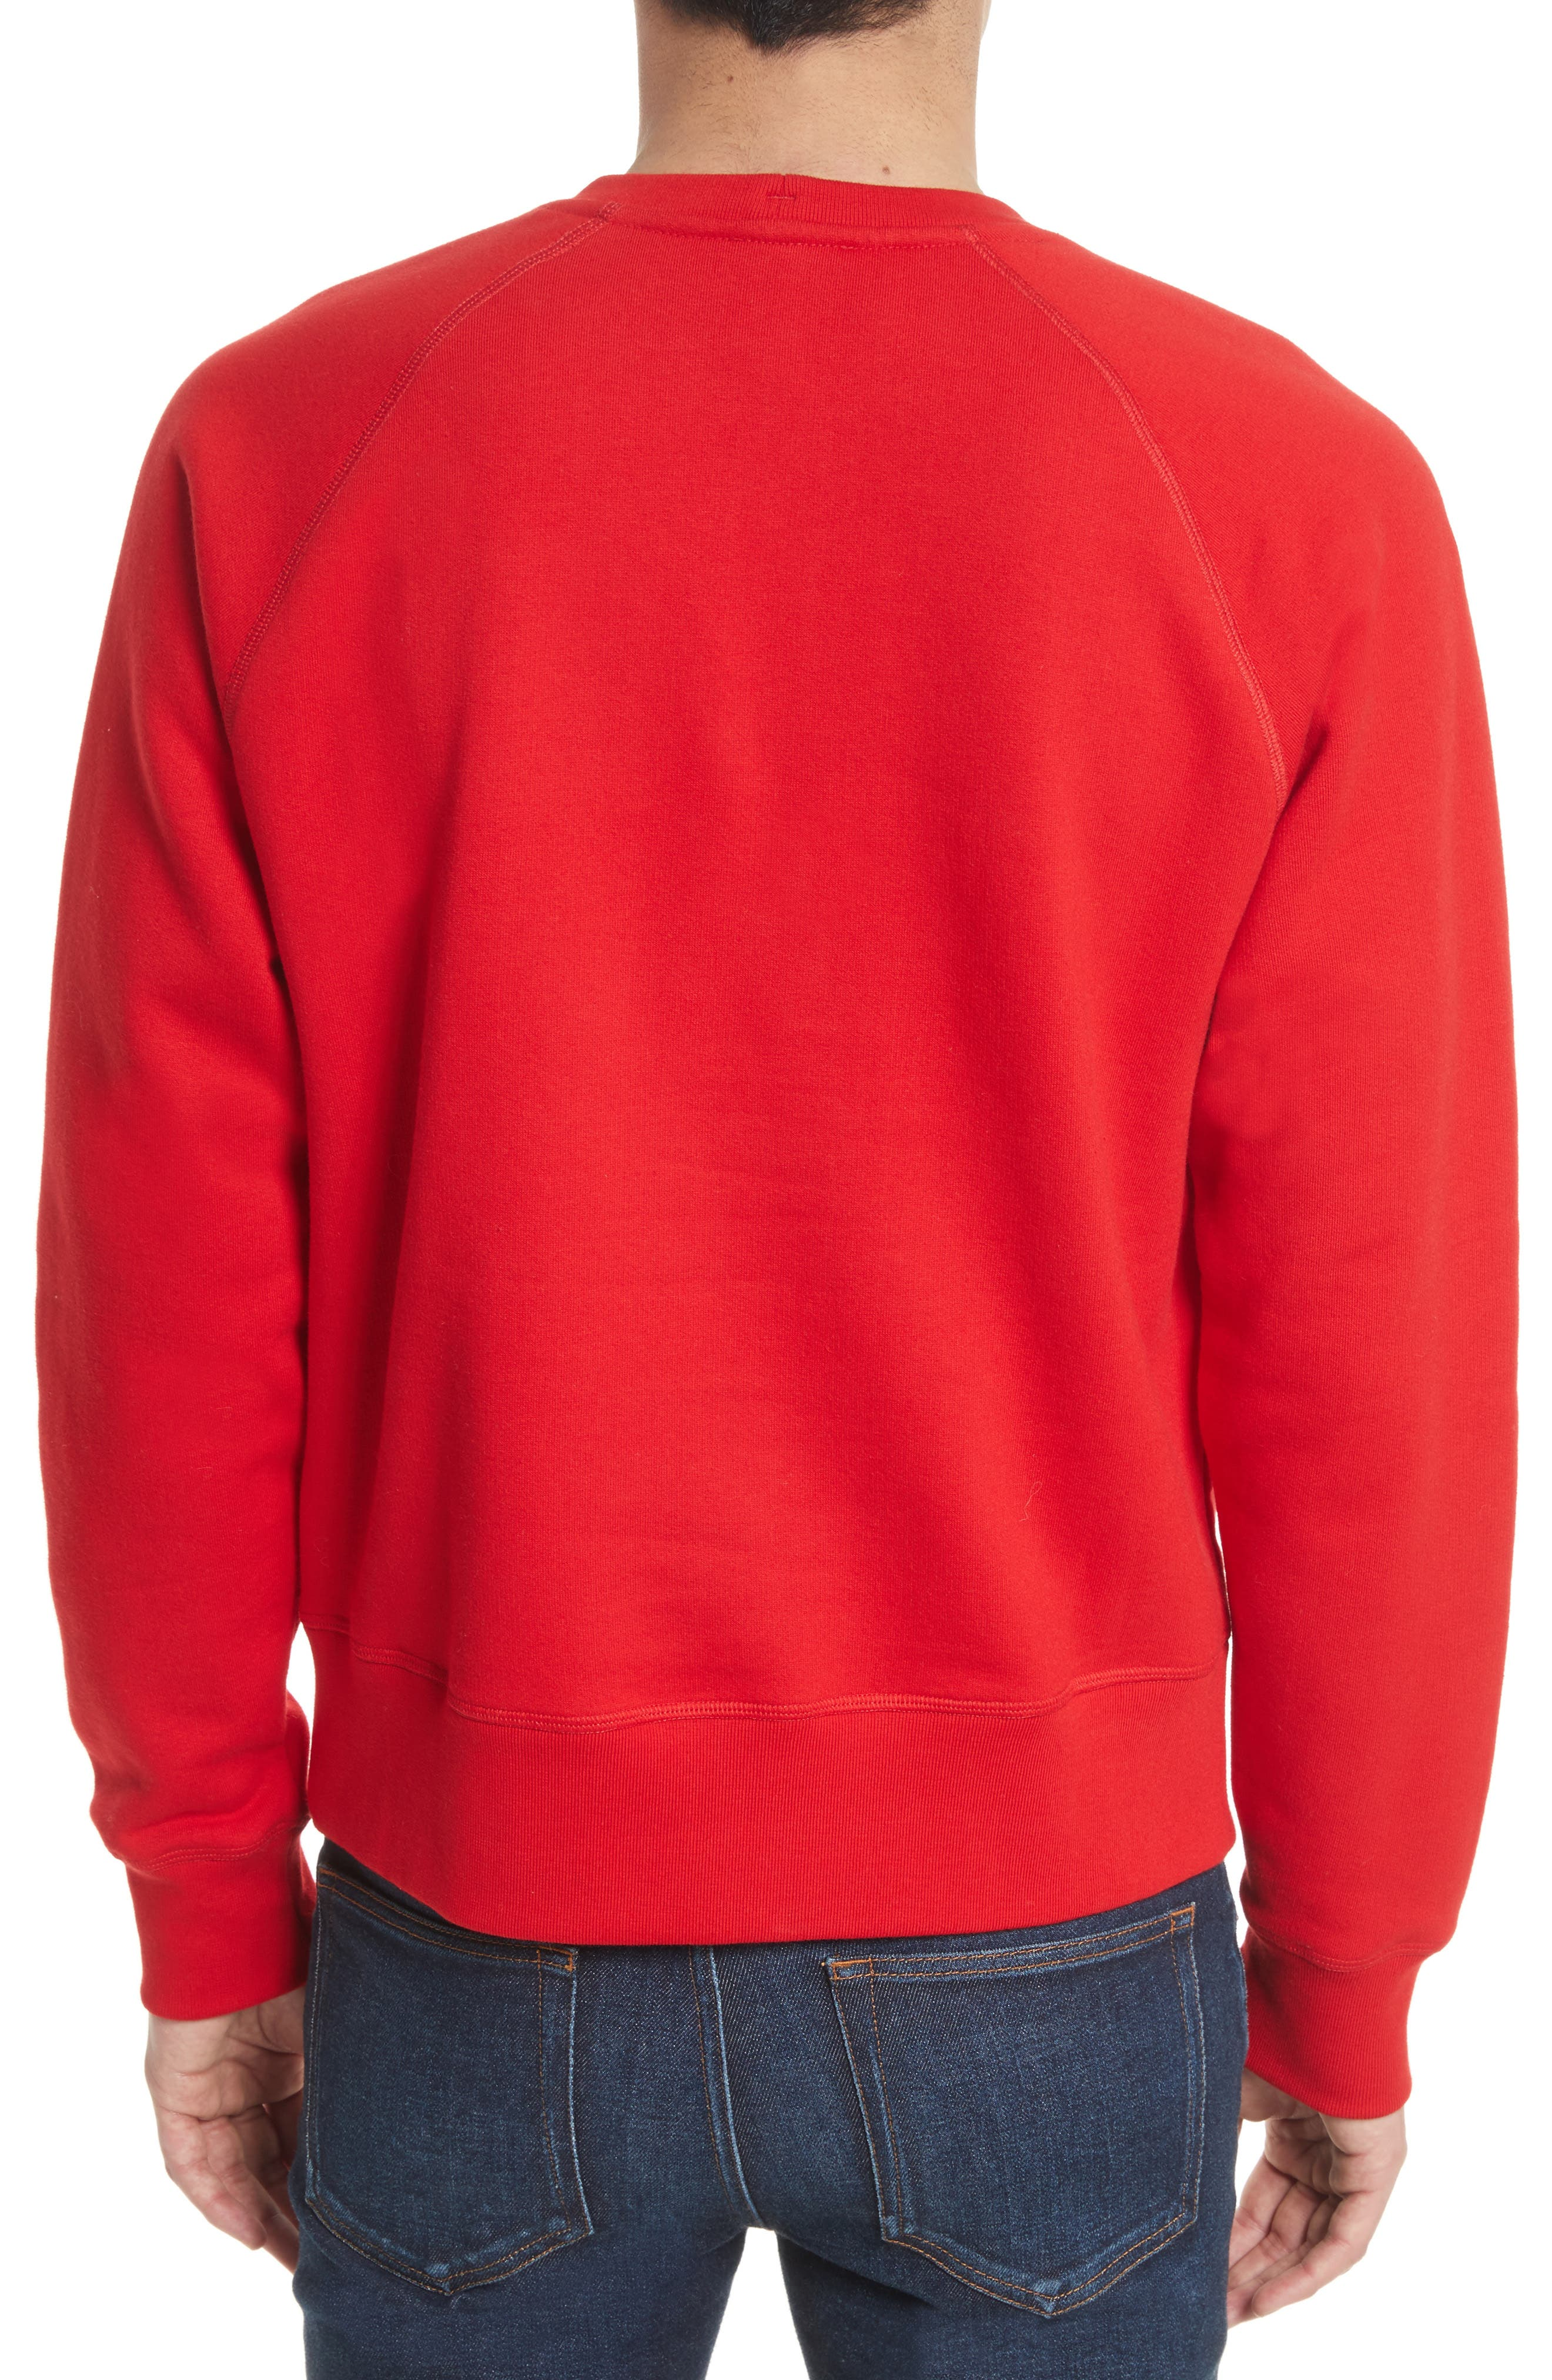 Grenoble Logo Patch Sweatshirt,                             Alternate thumbnail 2, color,                             610